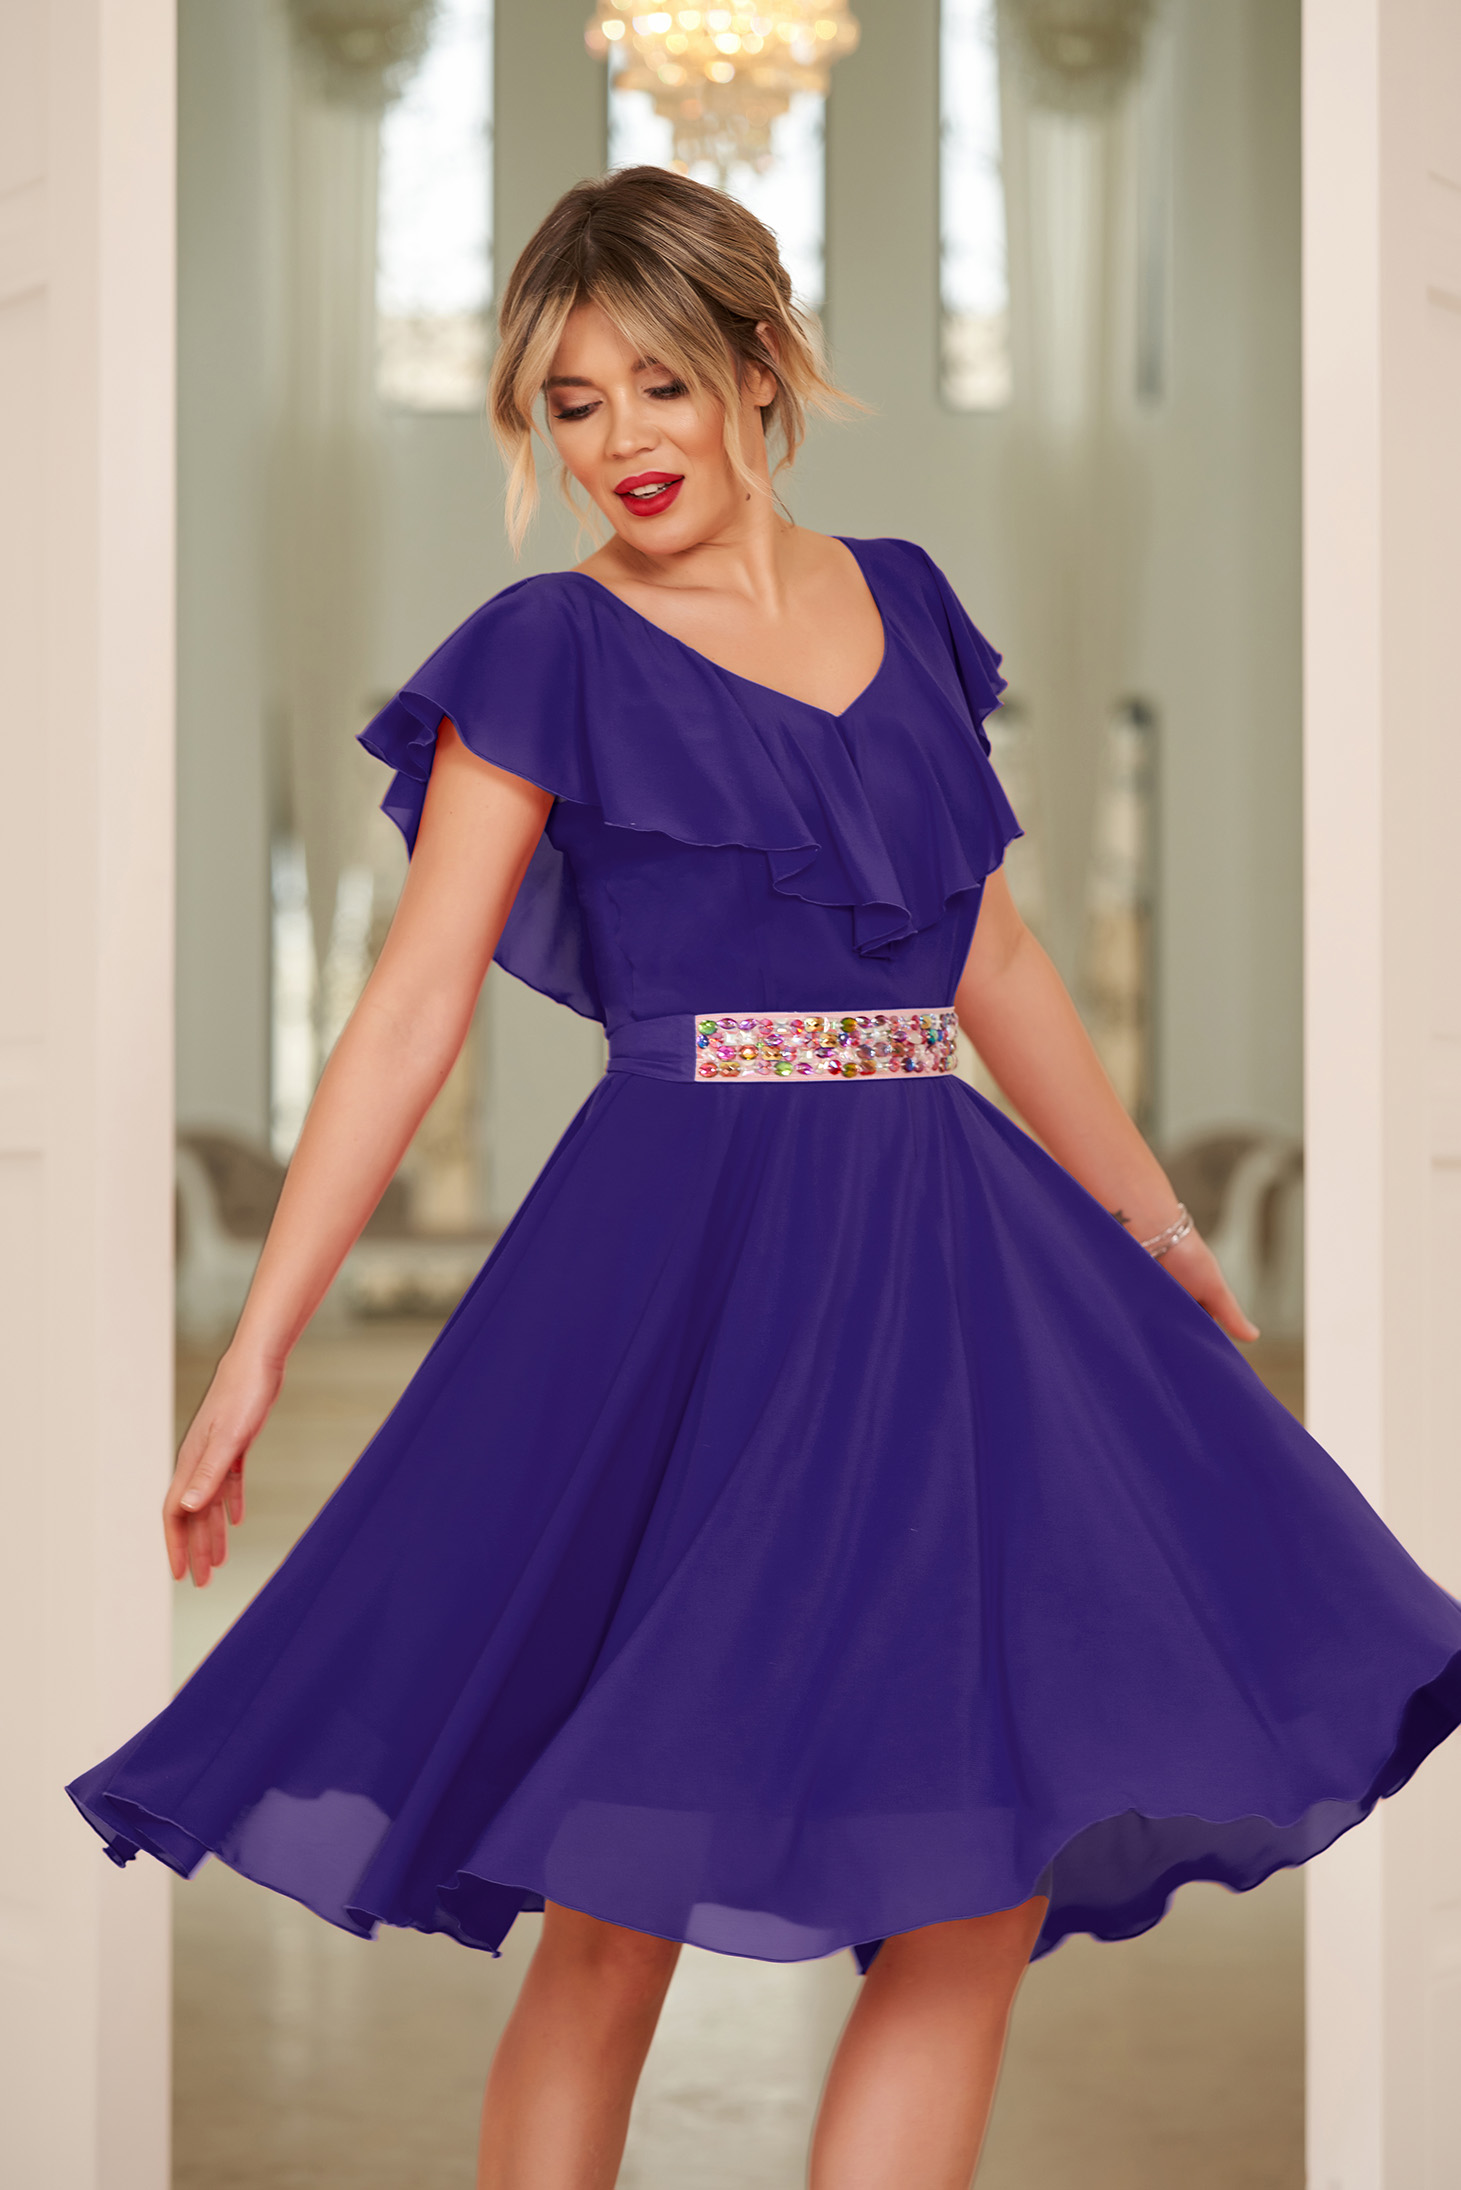 StarShinerS purple occasional cloche dress voile fabric with ruffle details accessorized with tied waistband